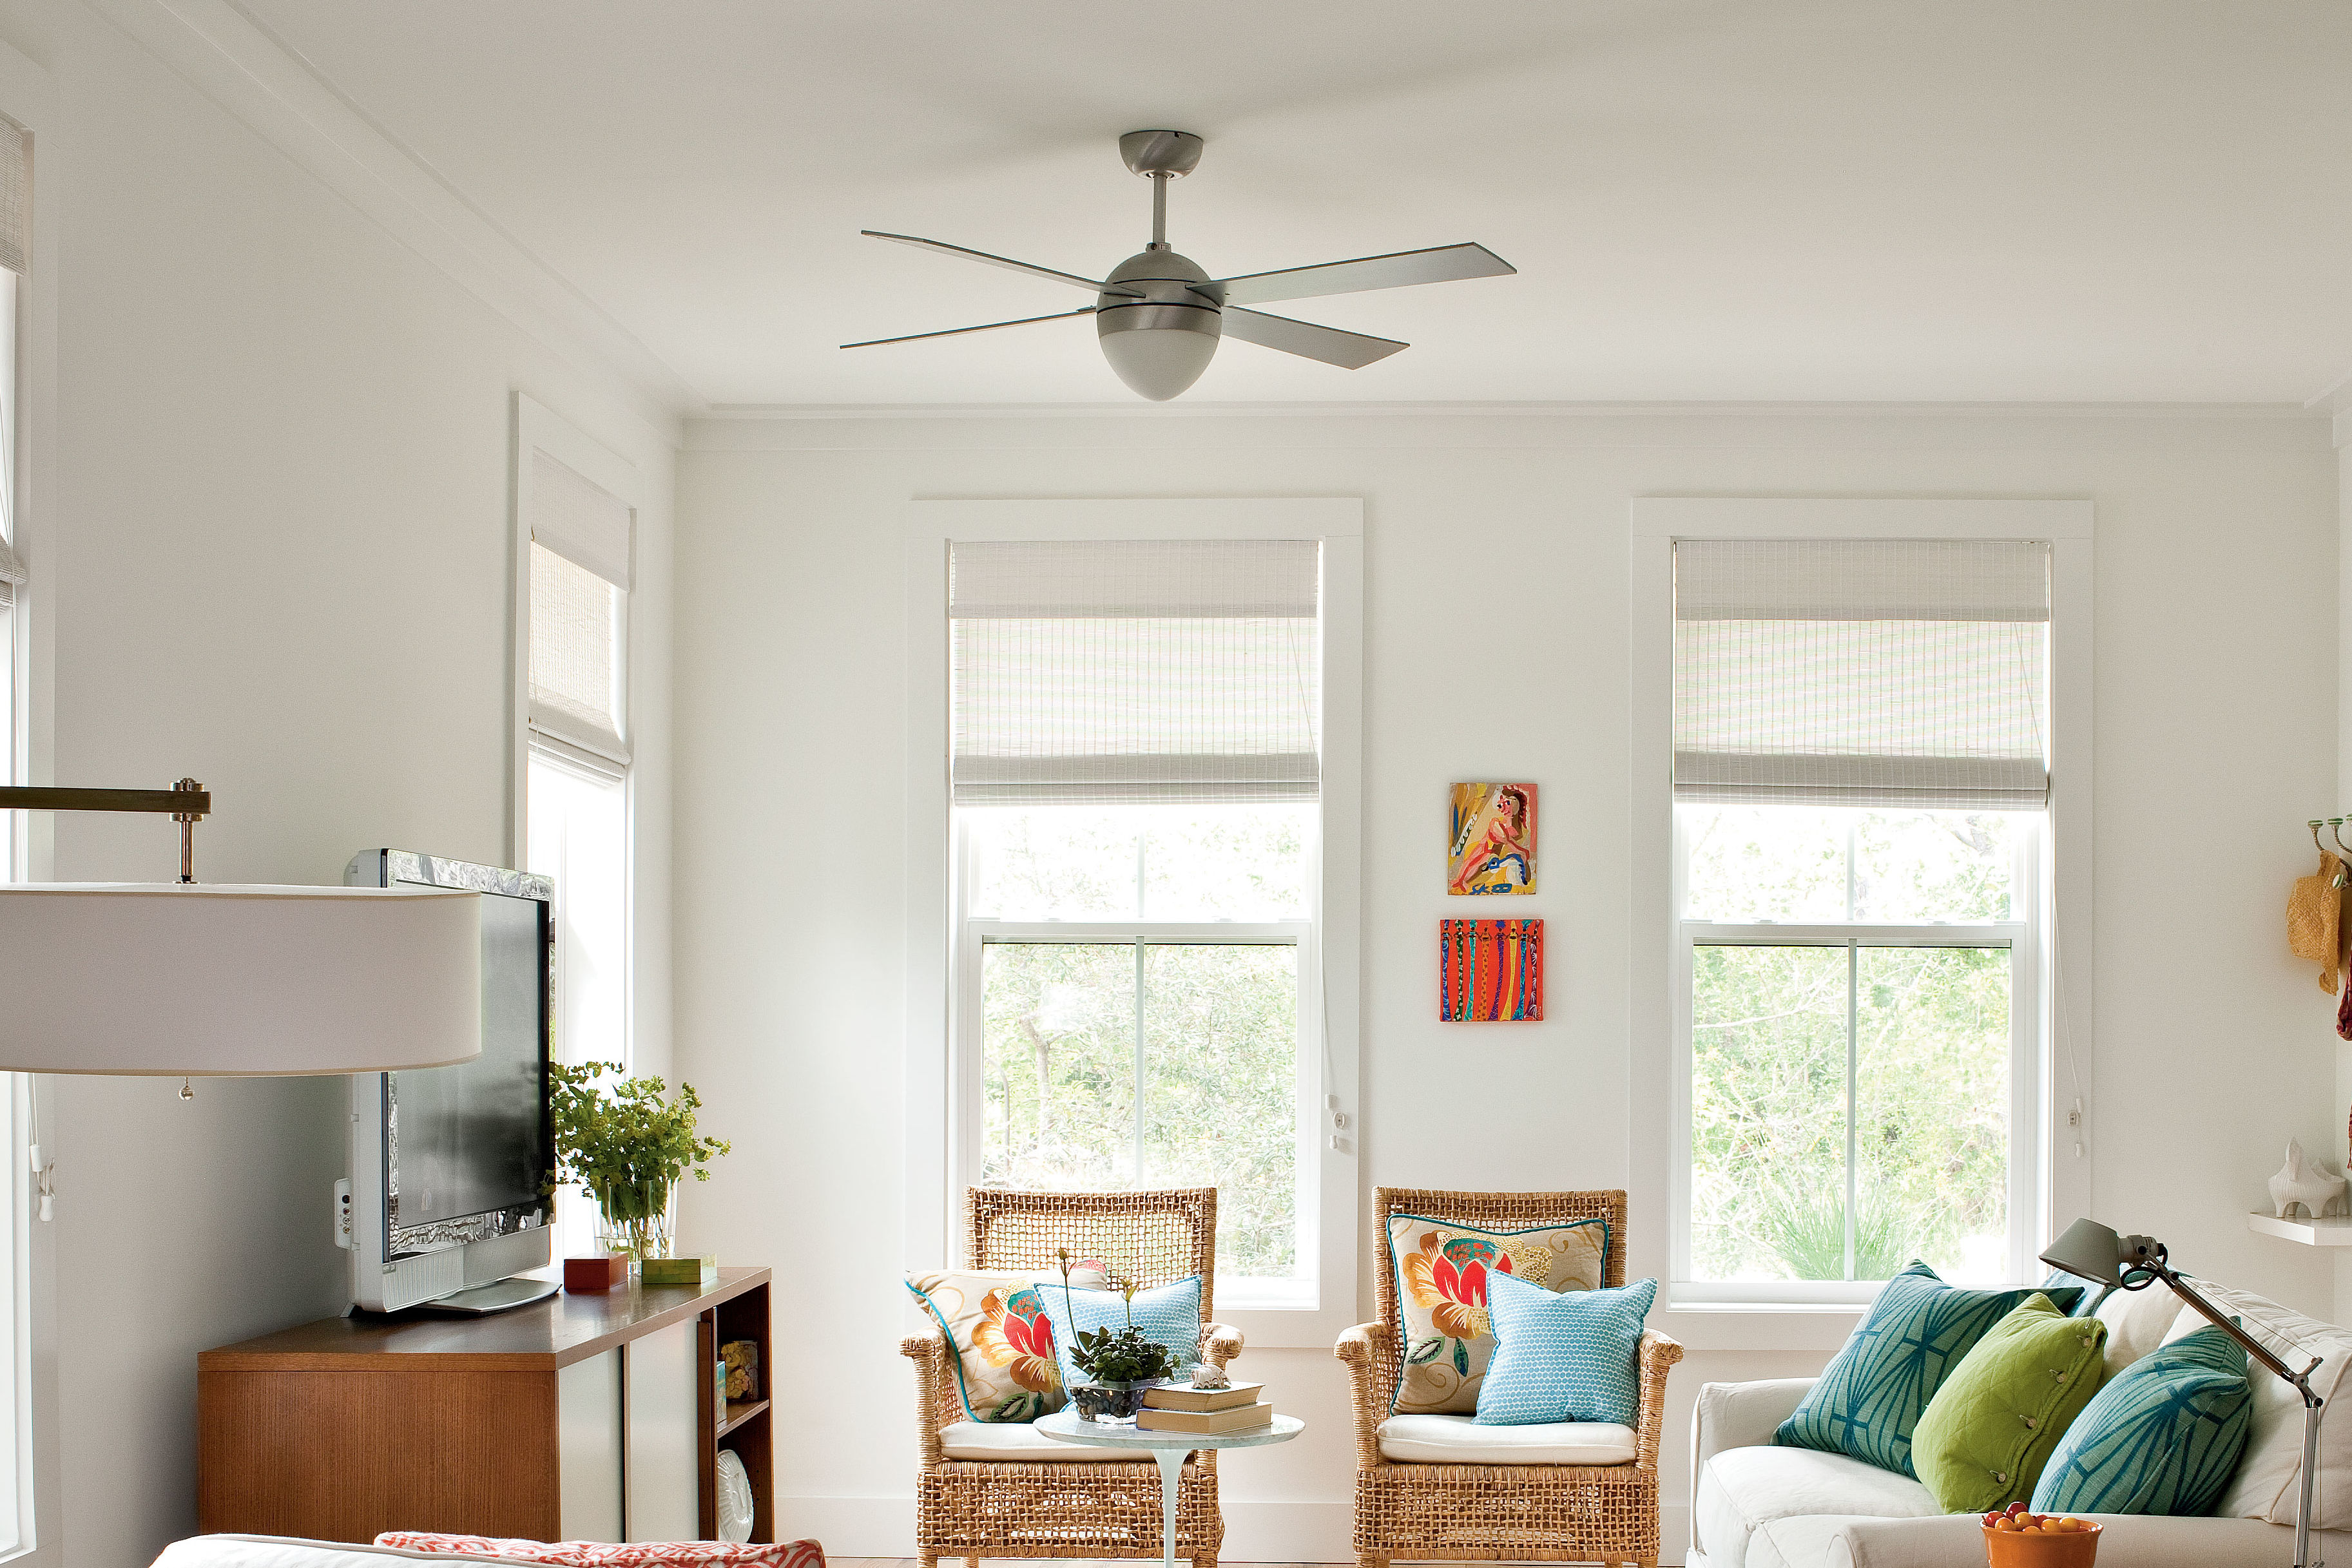 The One Thing You Need To Do Prepare Your Ceiling Fans For Summer